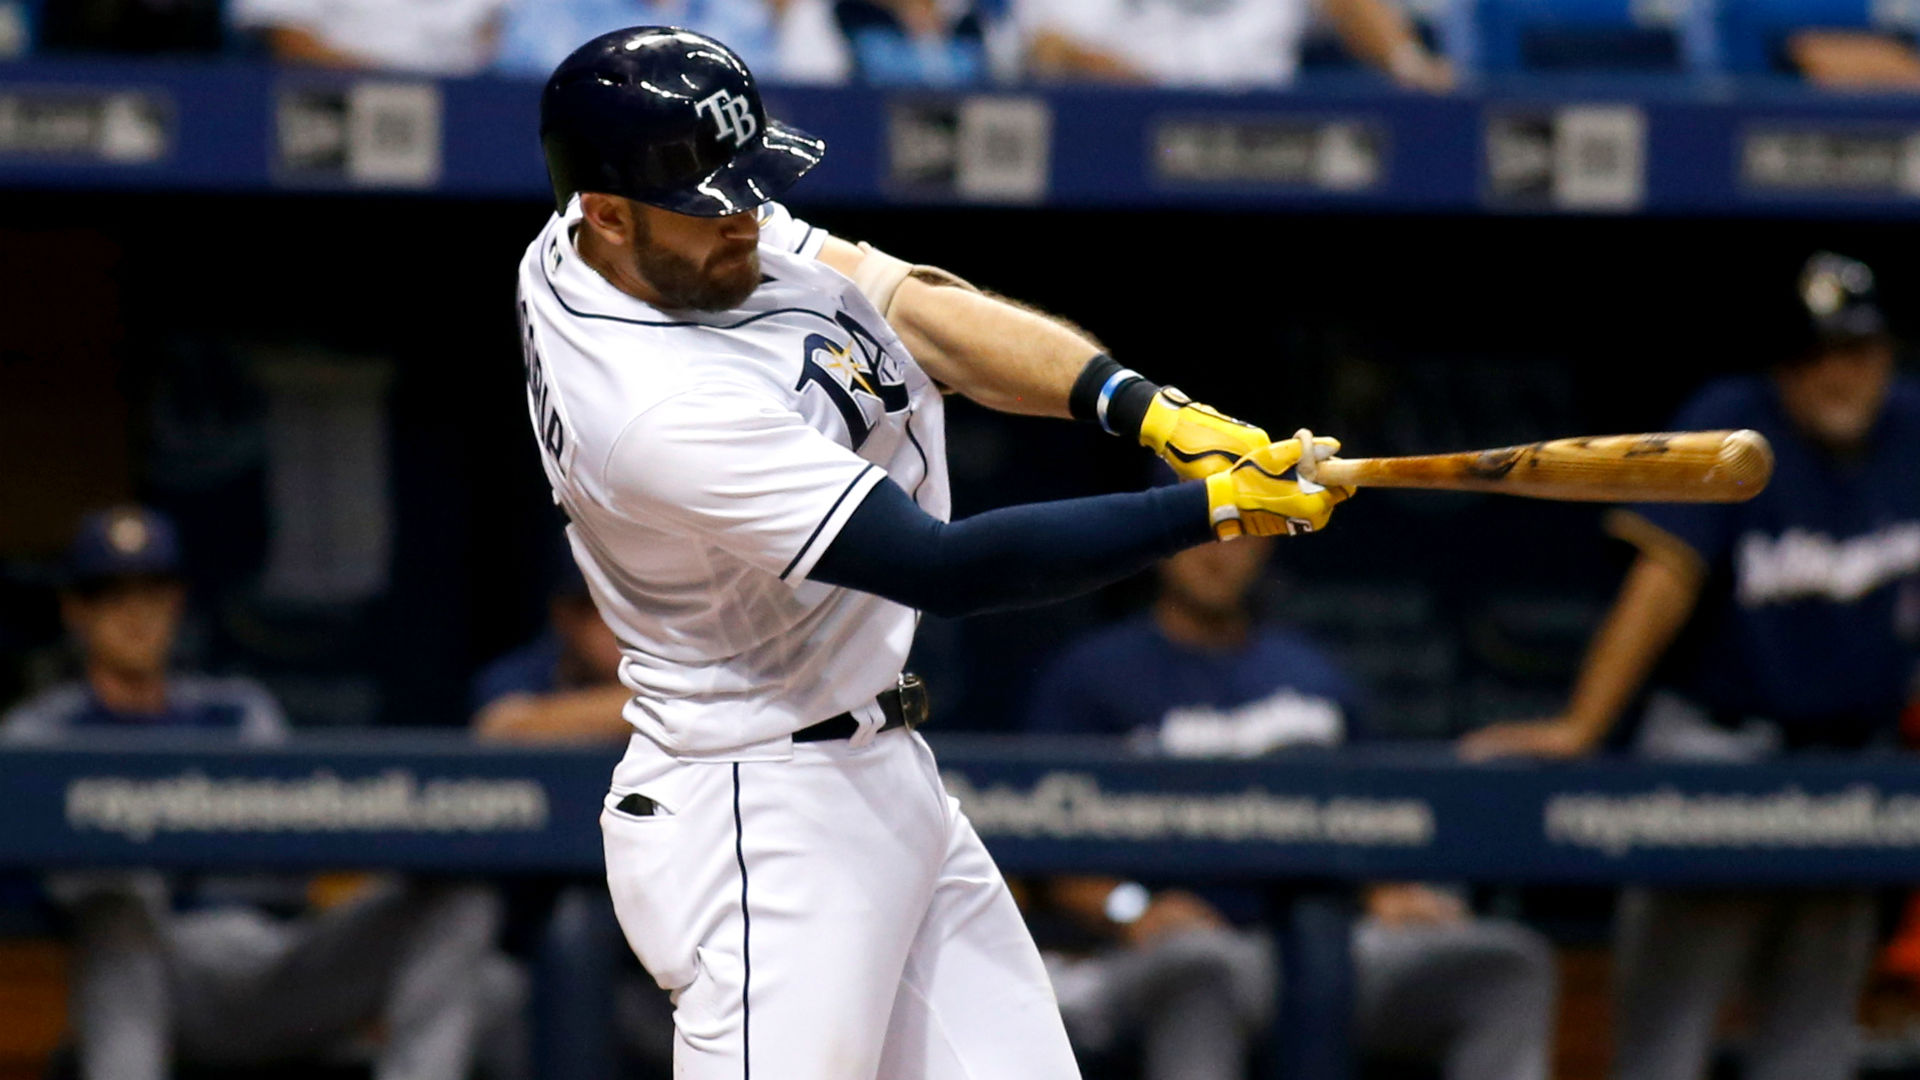 Giants acquire Evan Longoria from Rays